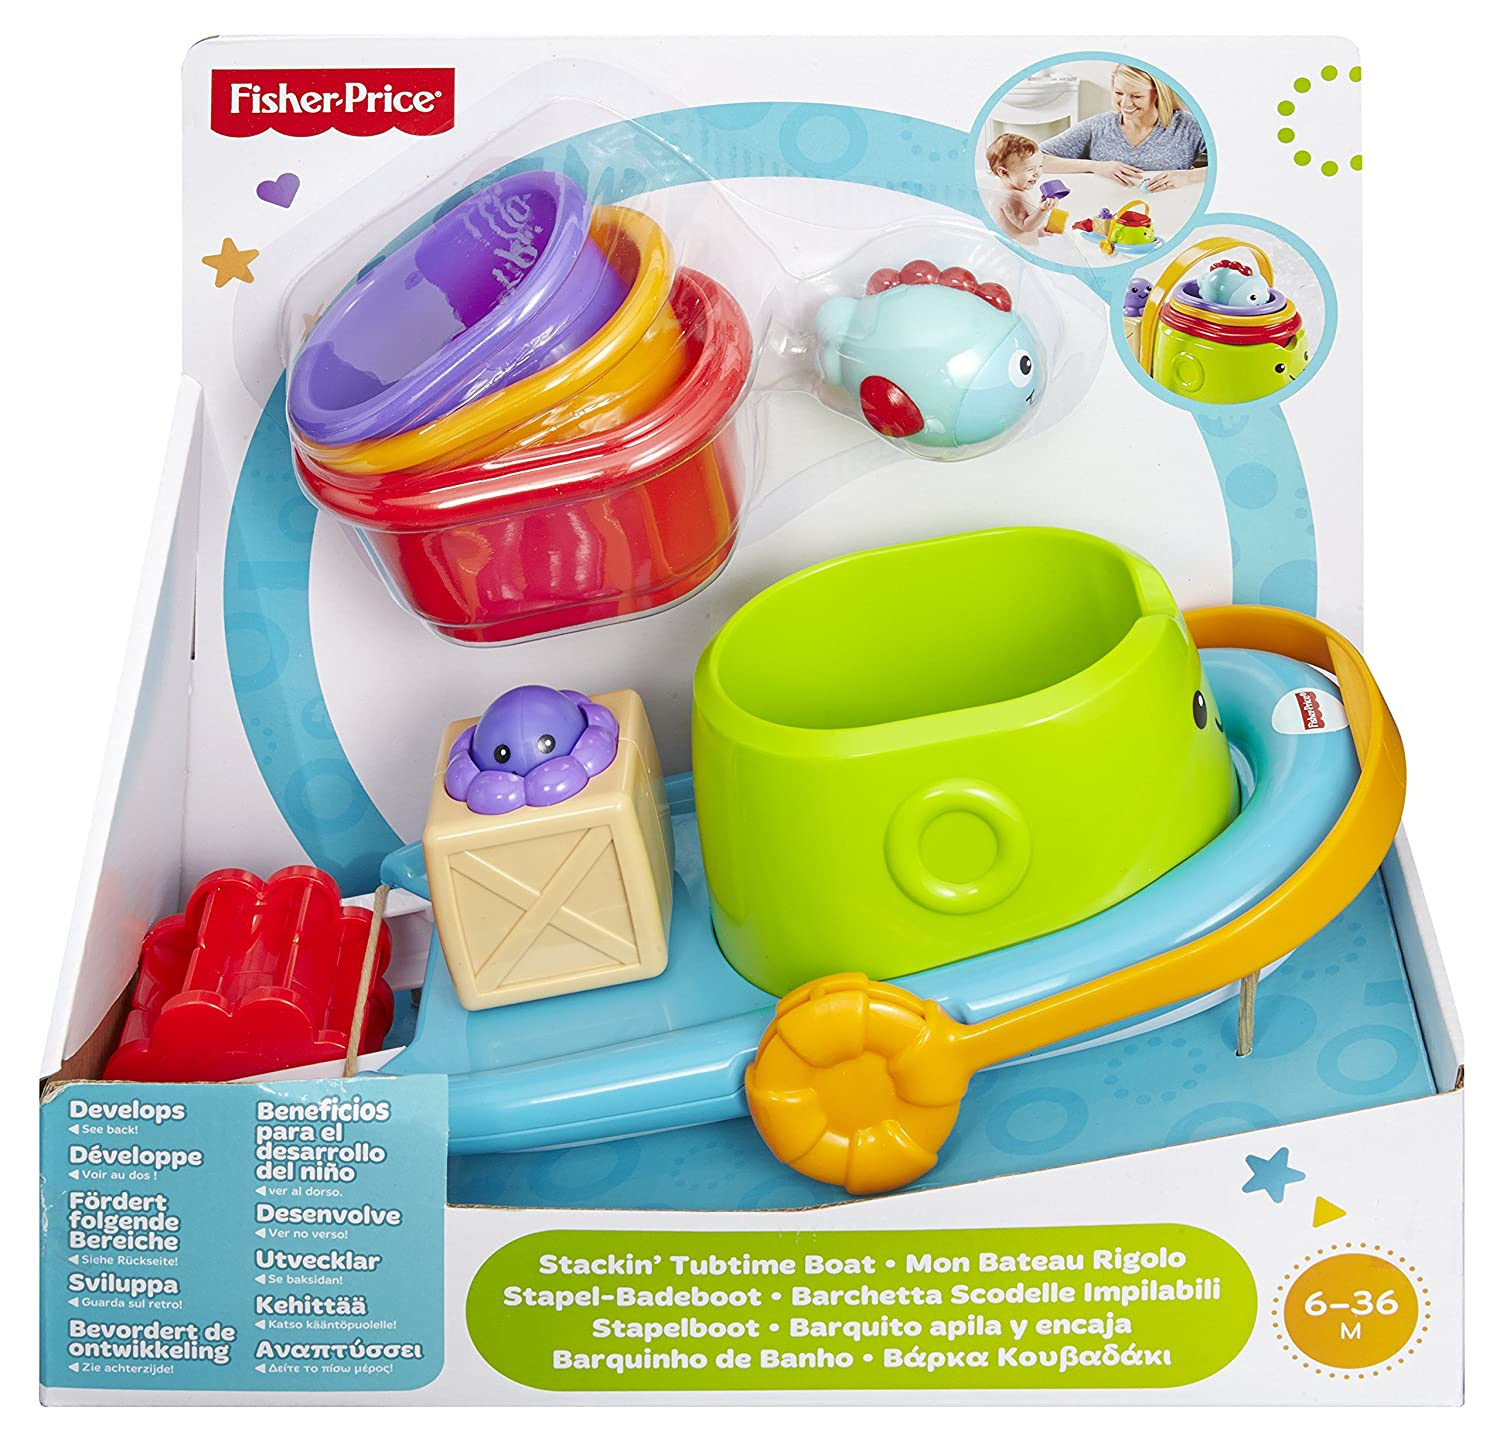 Amazon.com: Fisher-Price Stackin\' Tubtime Boat: Toys & Games